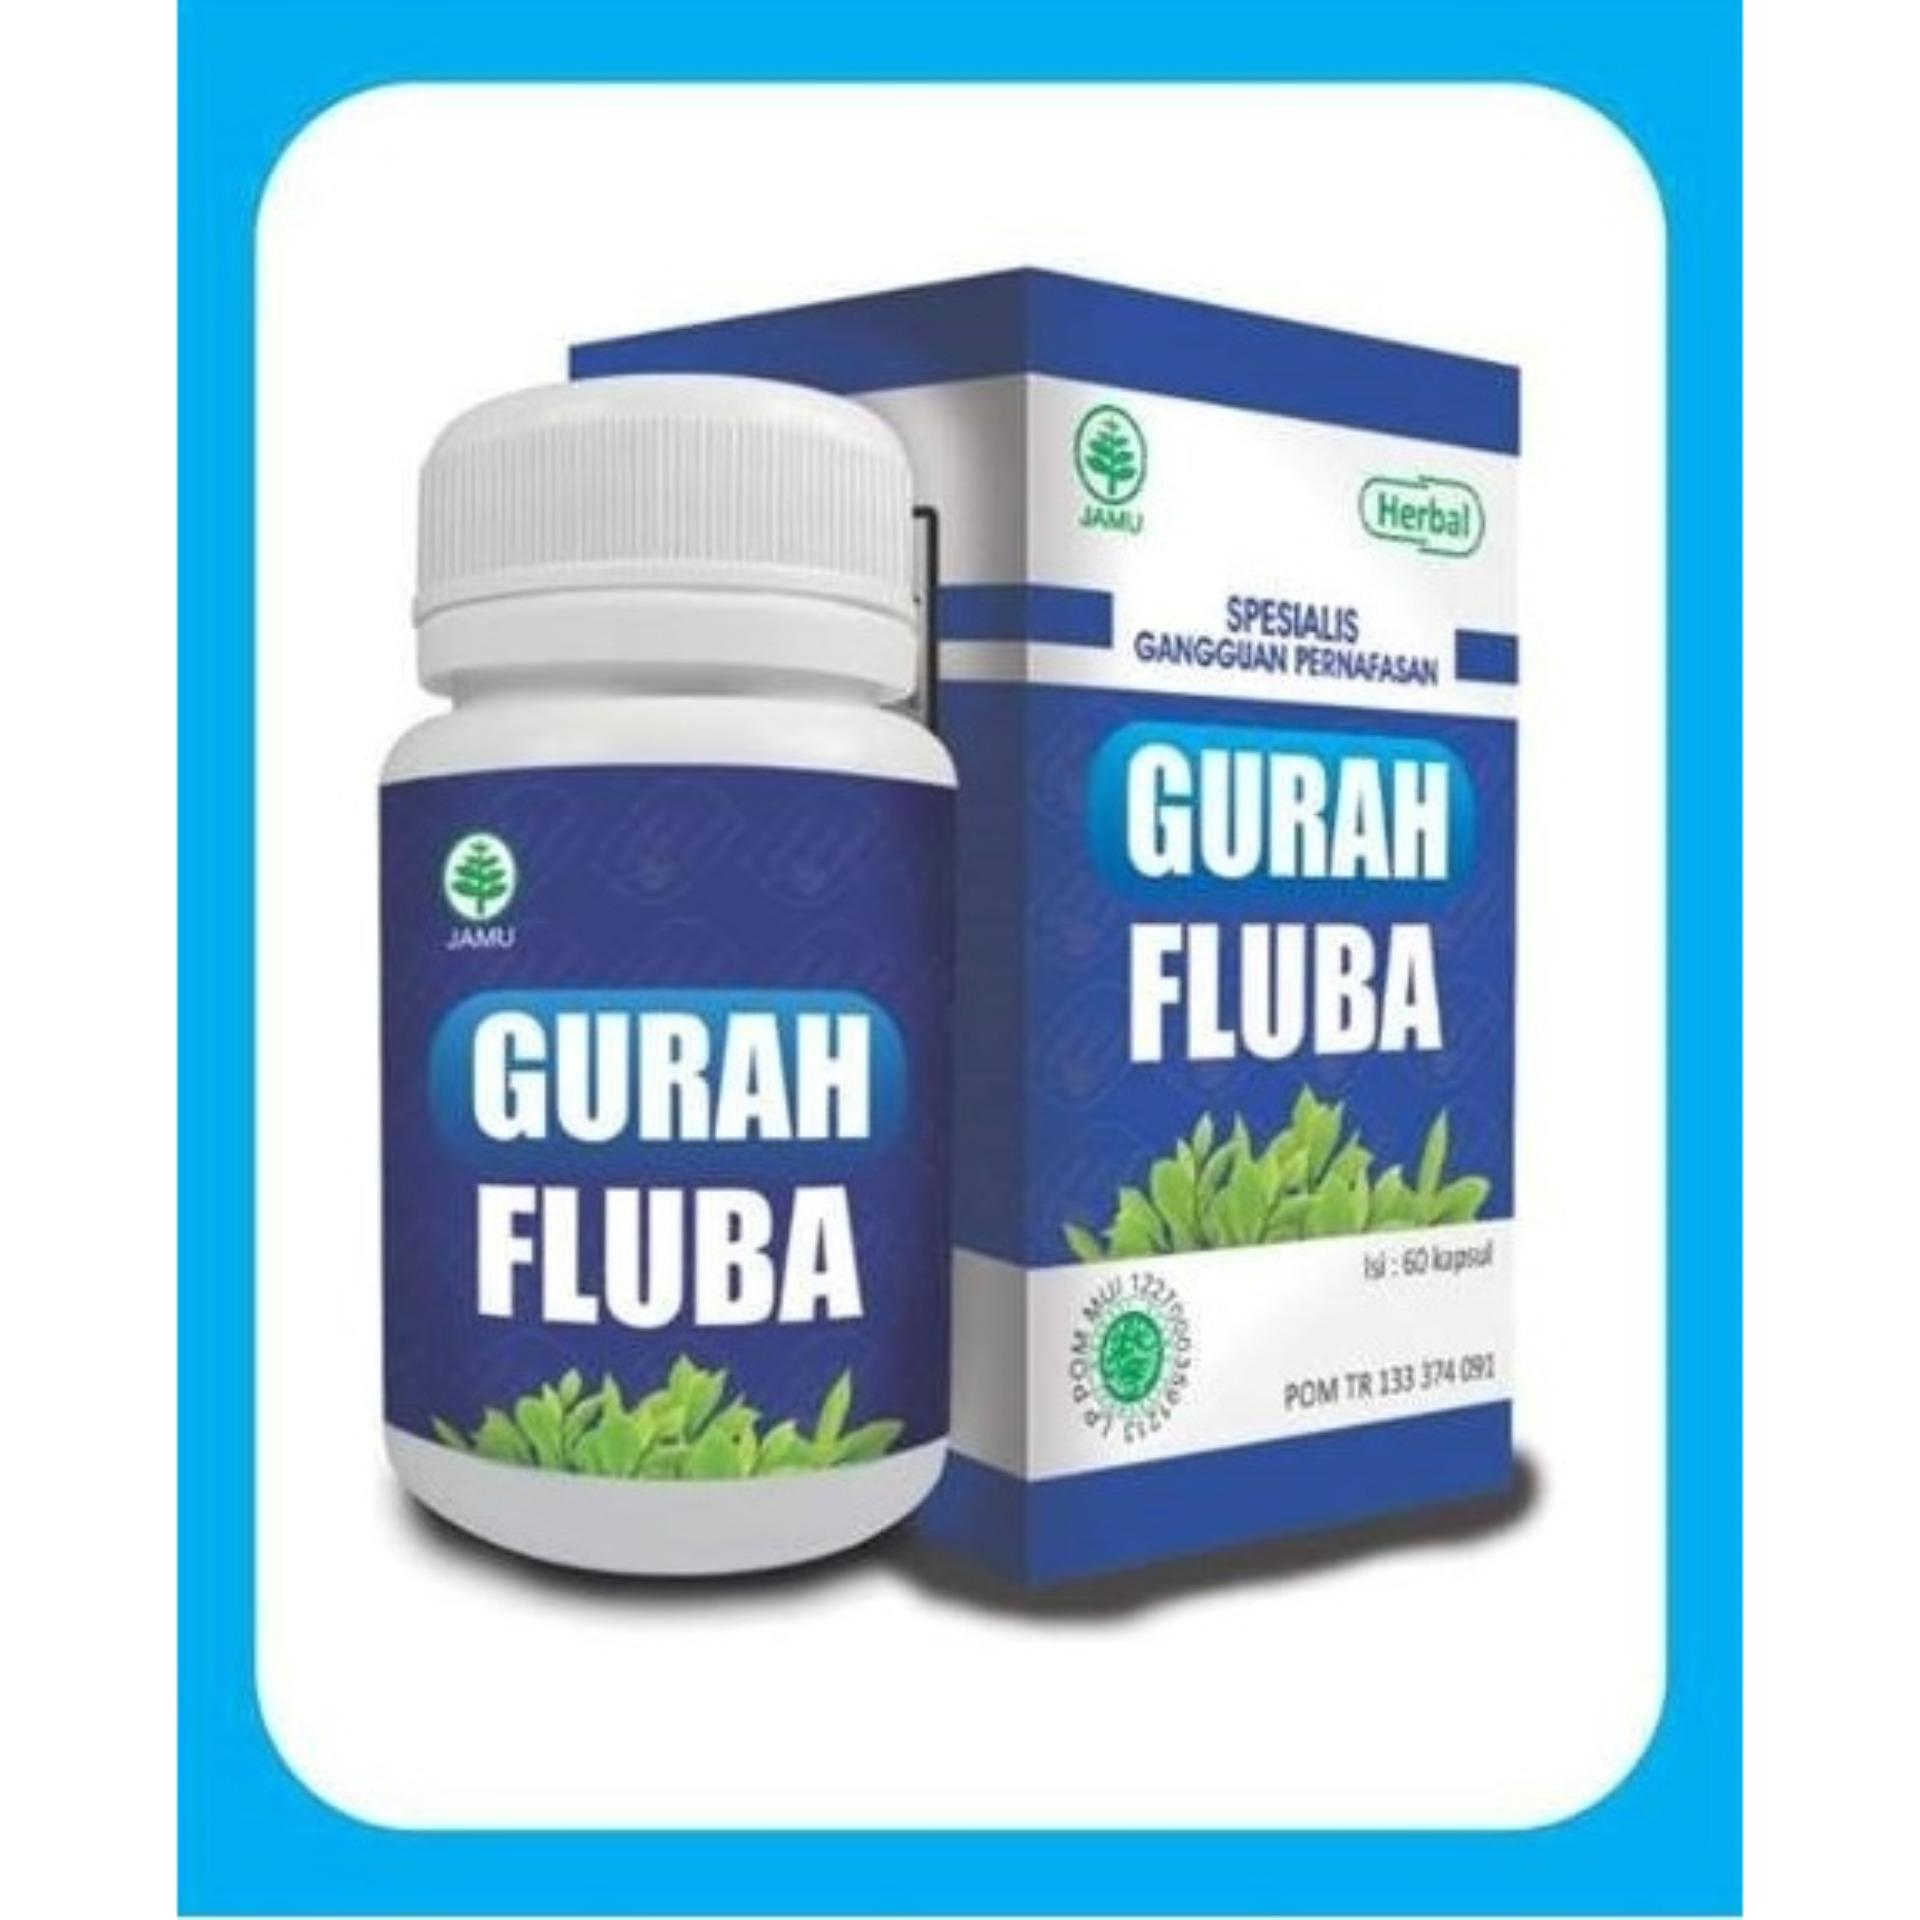 Buy & Sell Cheapest GURAH FLUBA OBAT Best Quality Product Deals - Indonesian Store